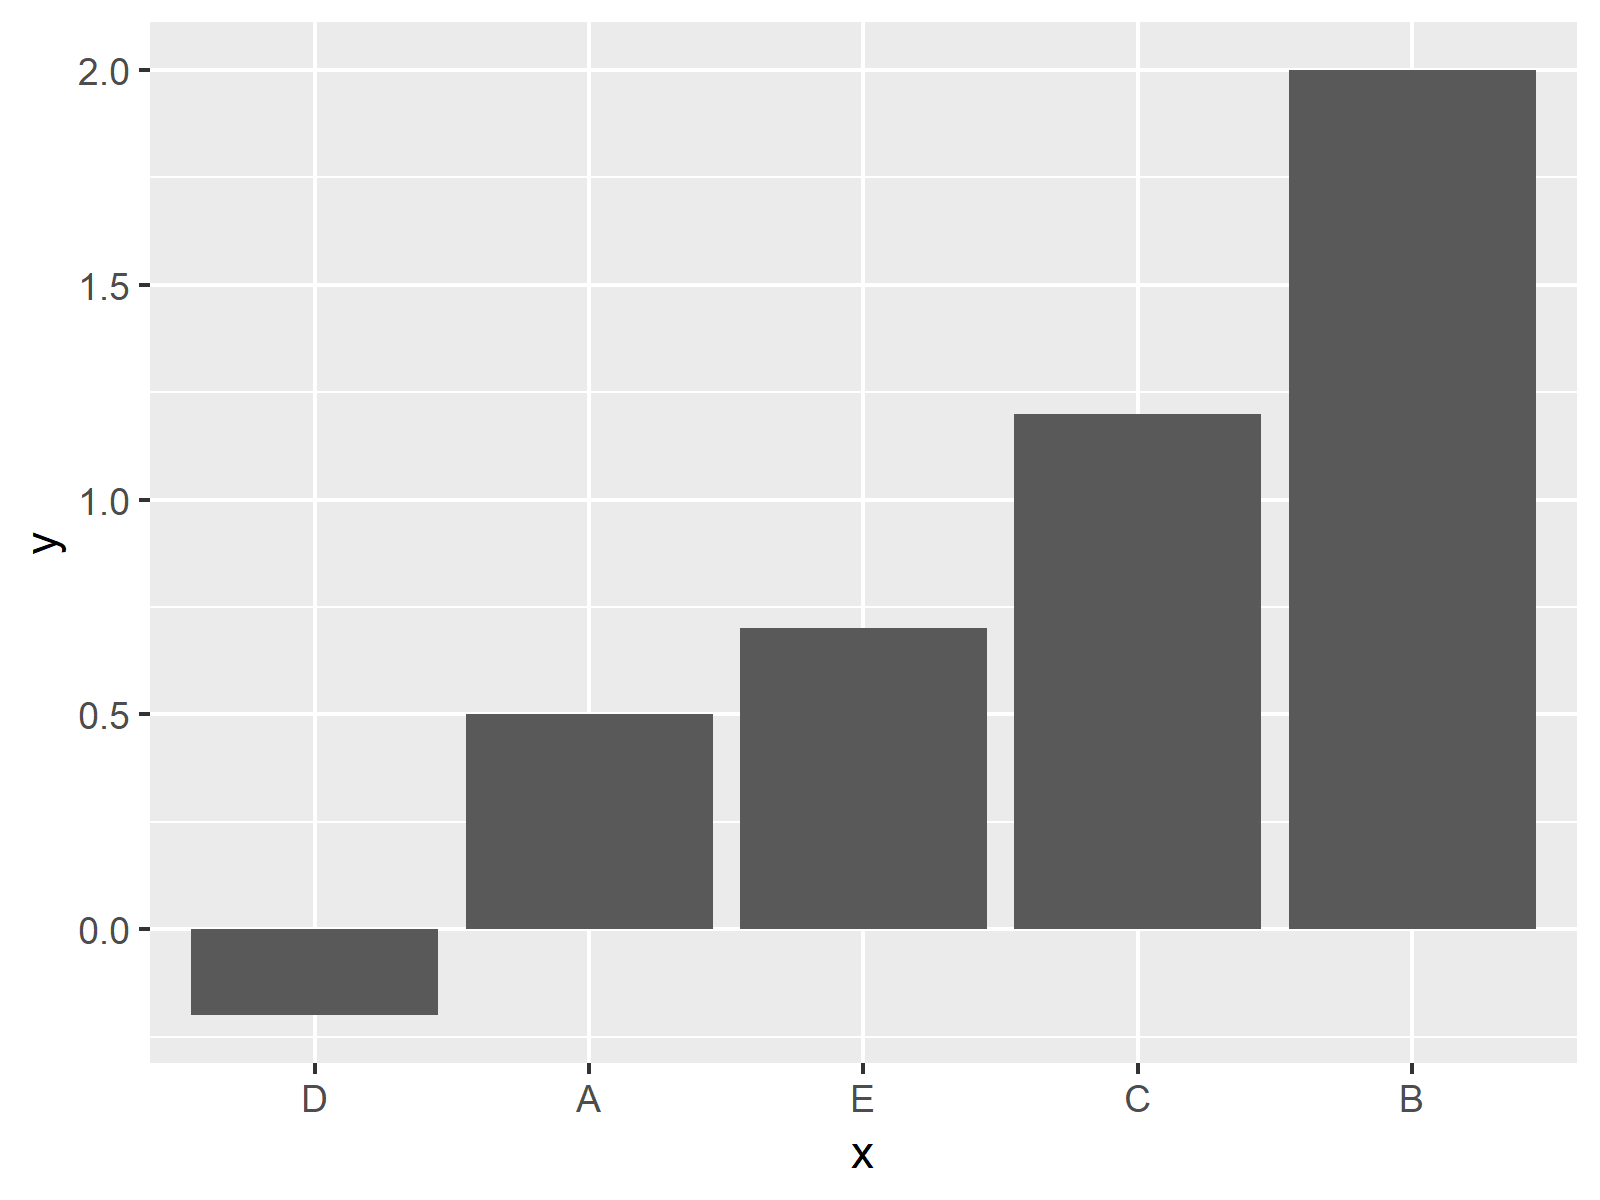 ggplot2 barchart in r with increasing order